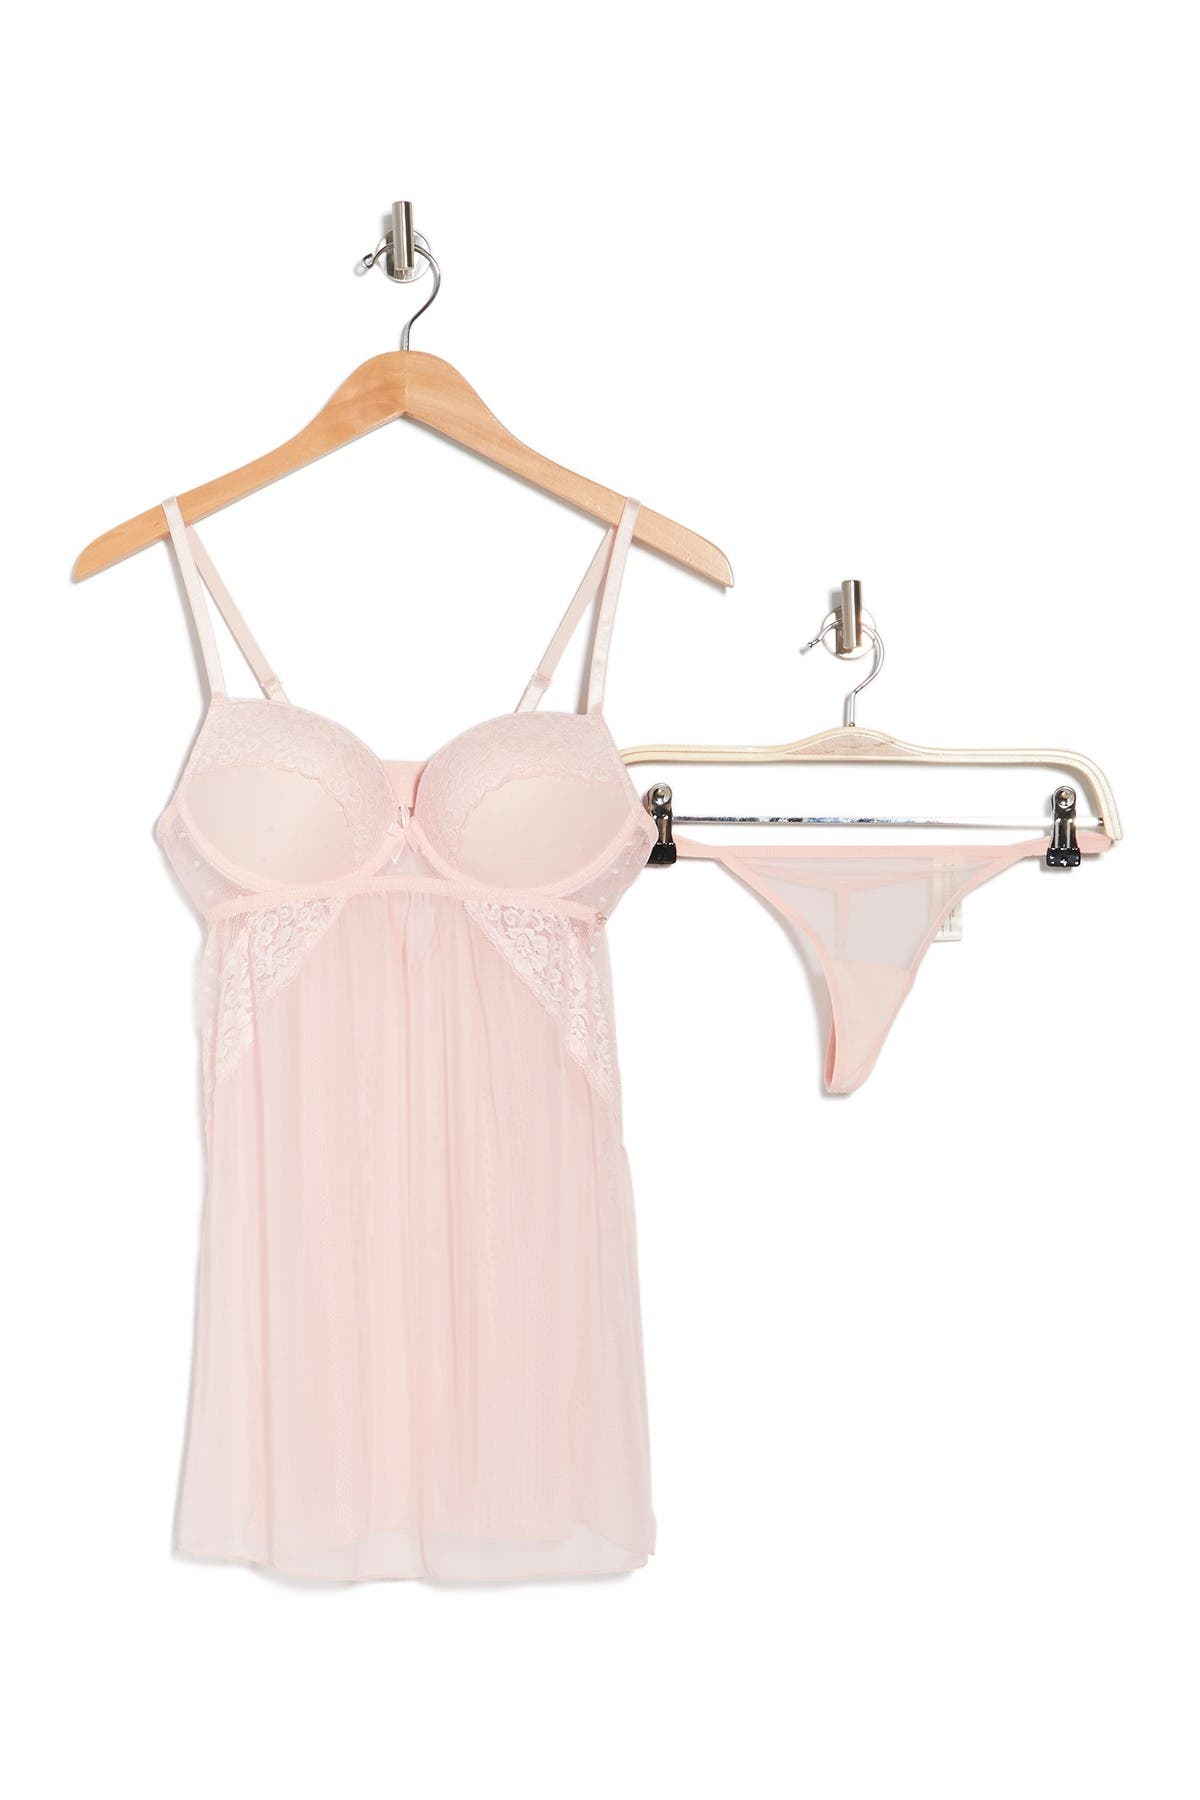 Image of Jessica Simpson Lace Mesh Babydoll & Thong 2-Piece Set